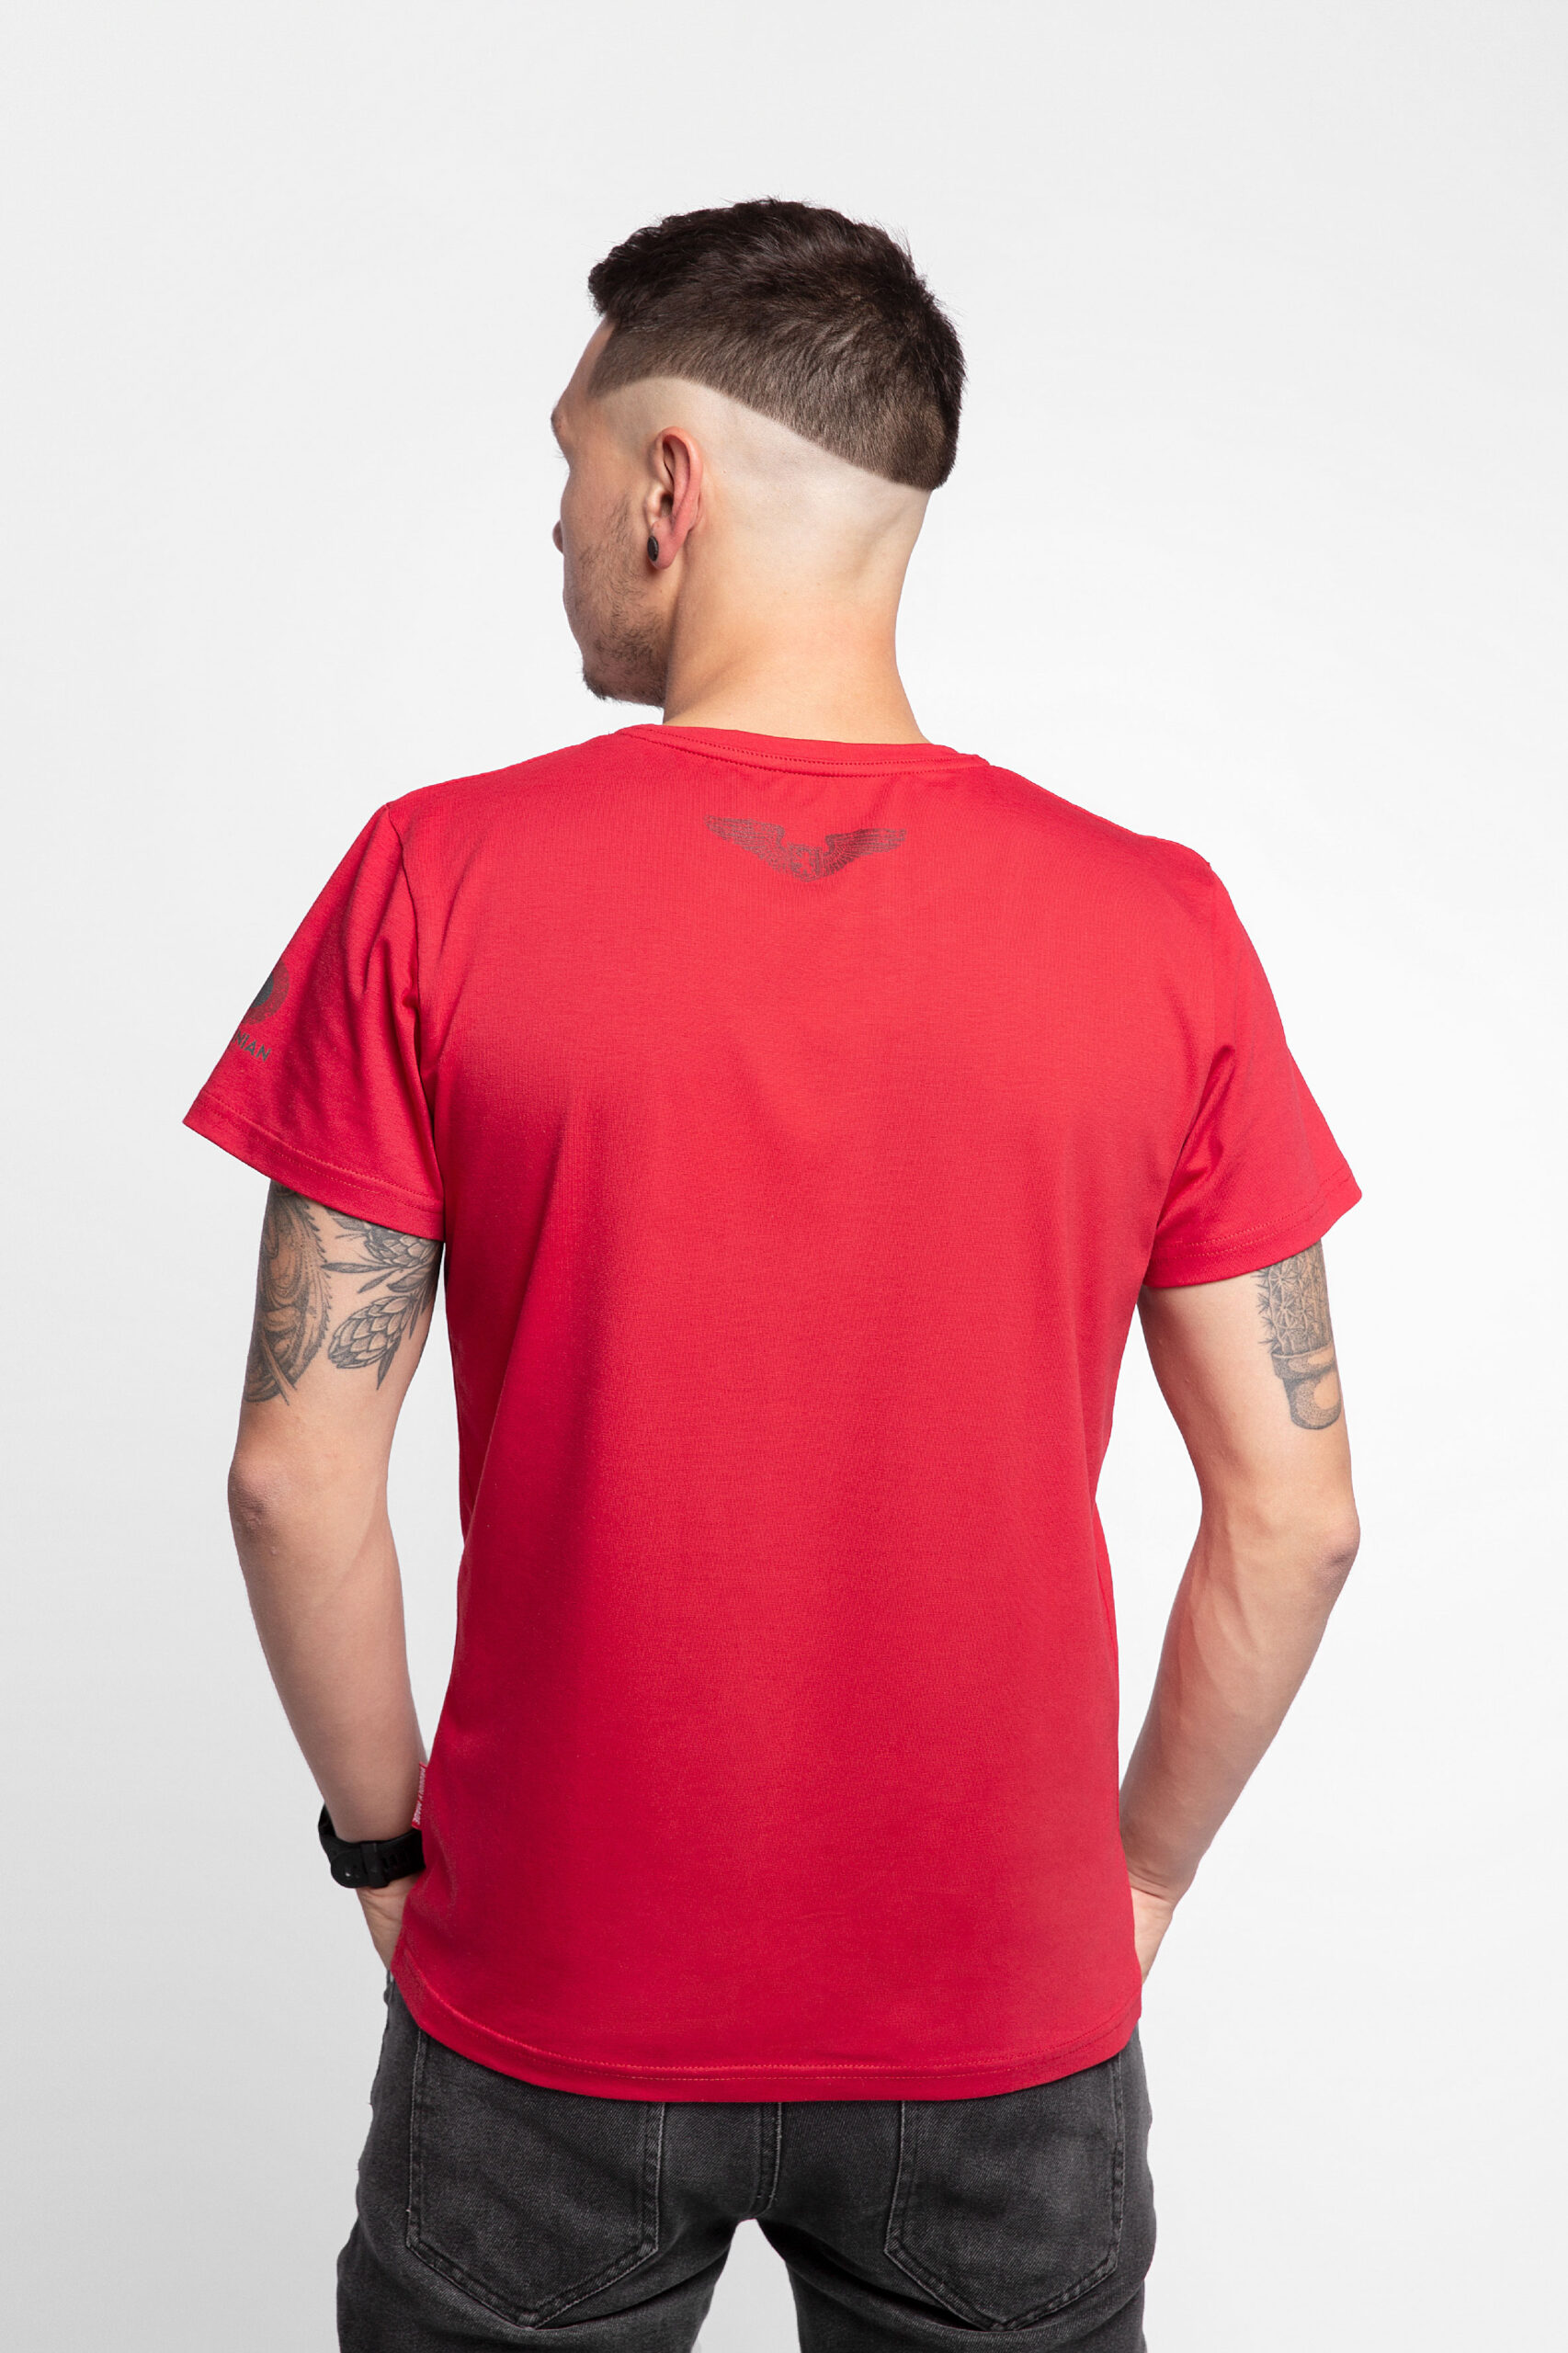 Men'S T-Shirt The Fire Of Fiery 2.0. Color red. 08.